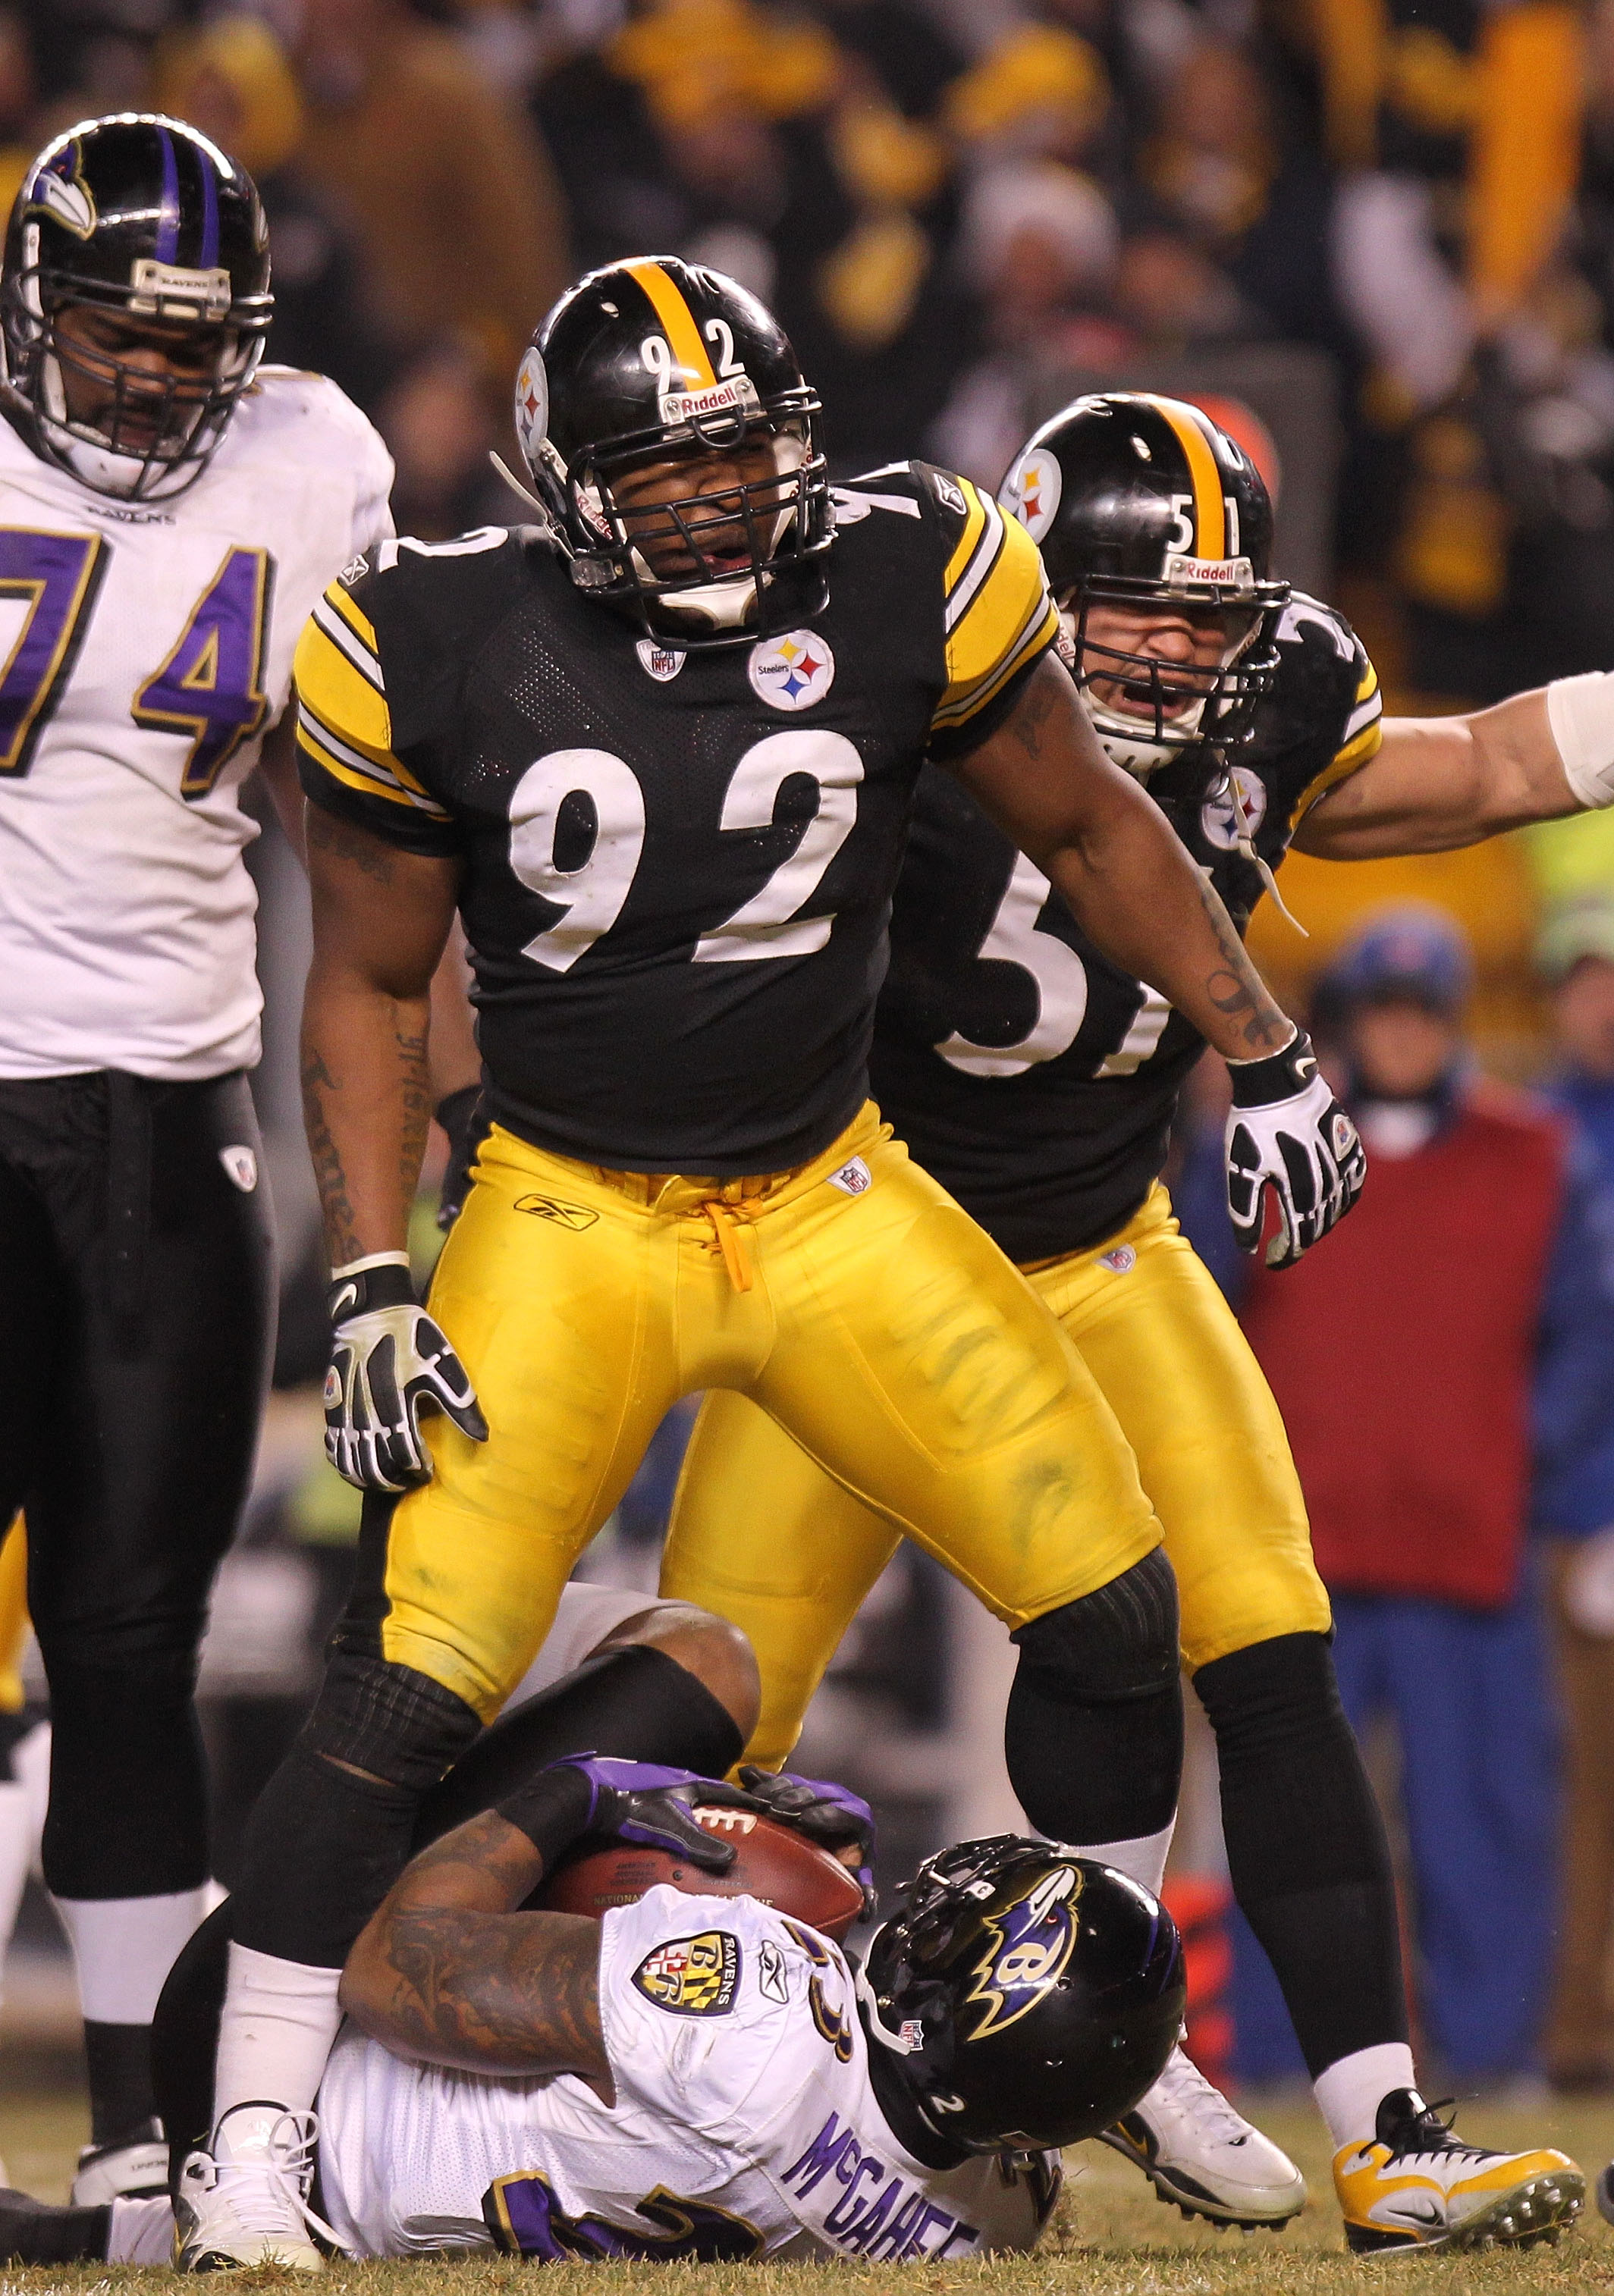 PITTSBURGH, PA - JANUARY 15:  Linebacker James Harrison #92 of the Pittsburgh Steelers celebrates after stopping running back Willis McGahee #23 of the Baltimore Ravens on a play during the AFC Divisional Playoff Game at Heinz Field on January 15, 2011 in